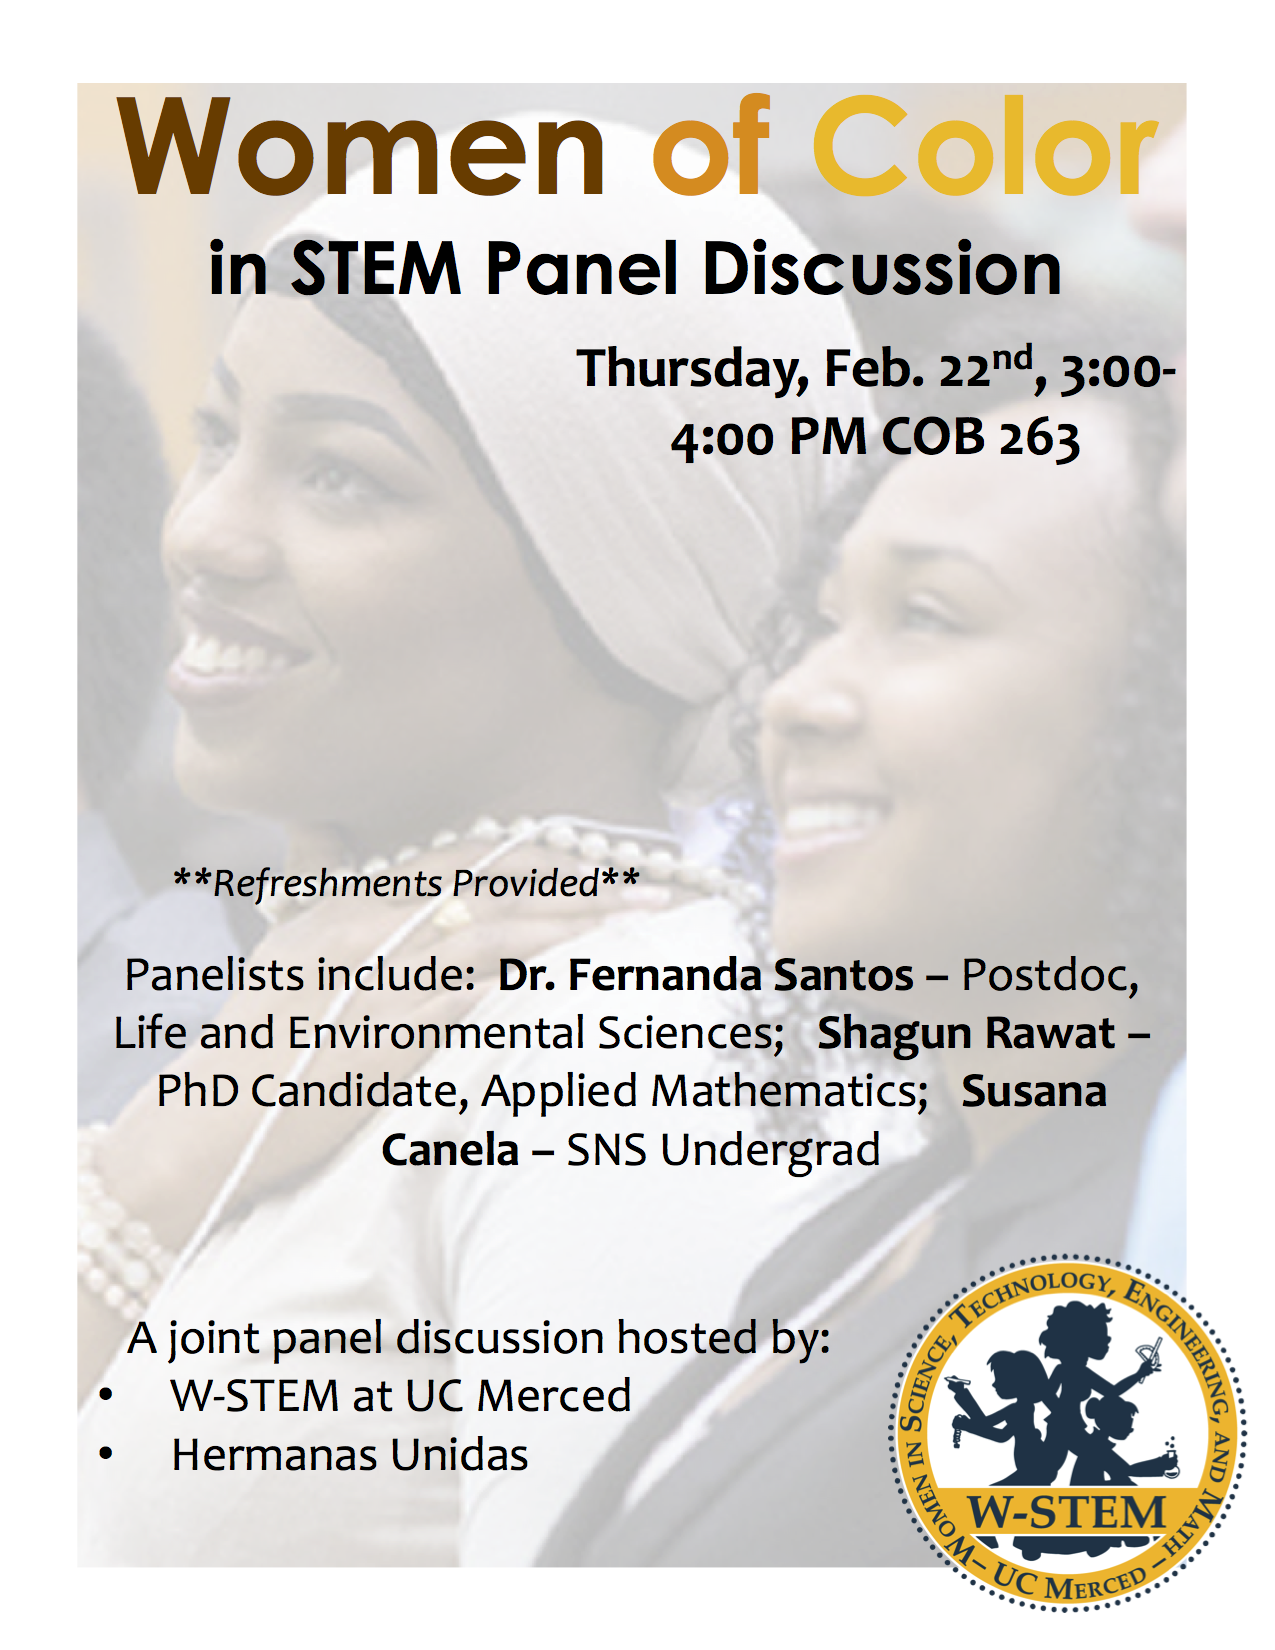 Women of Color Panel Discussion